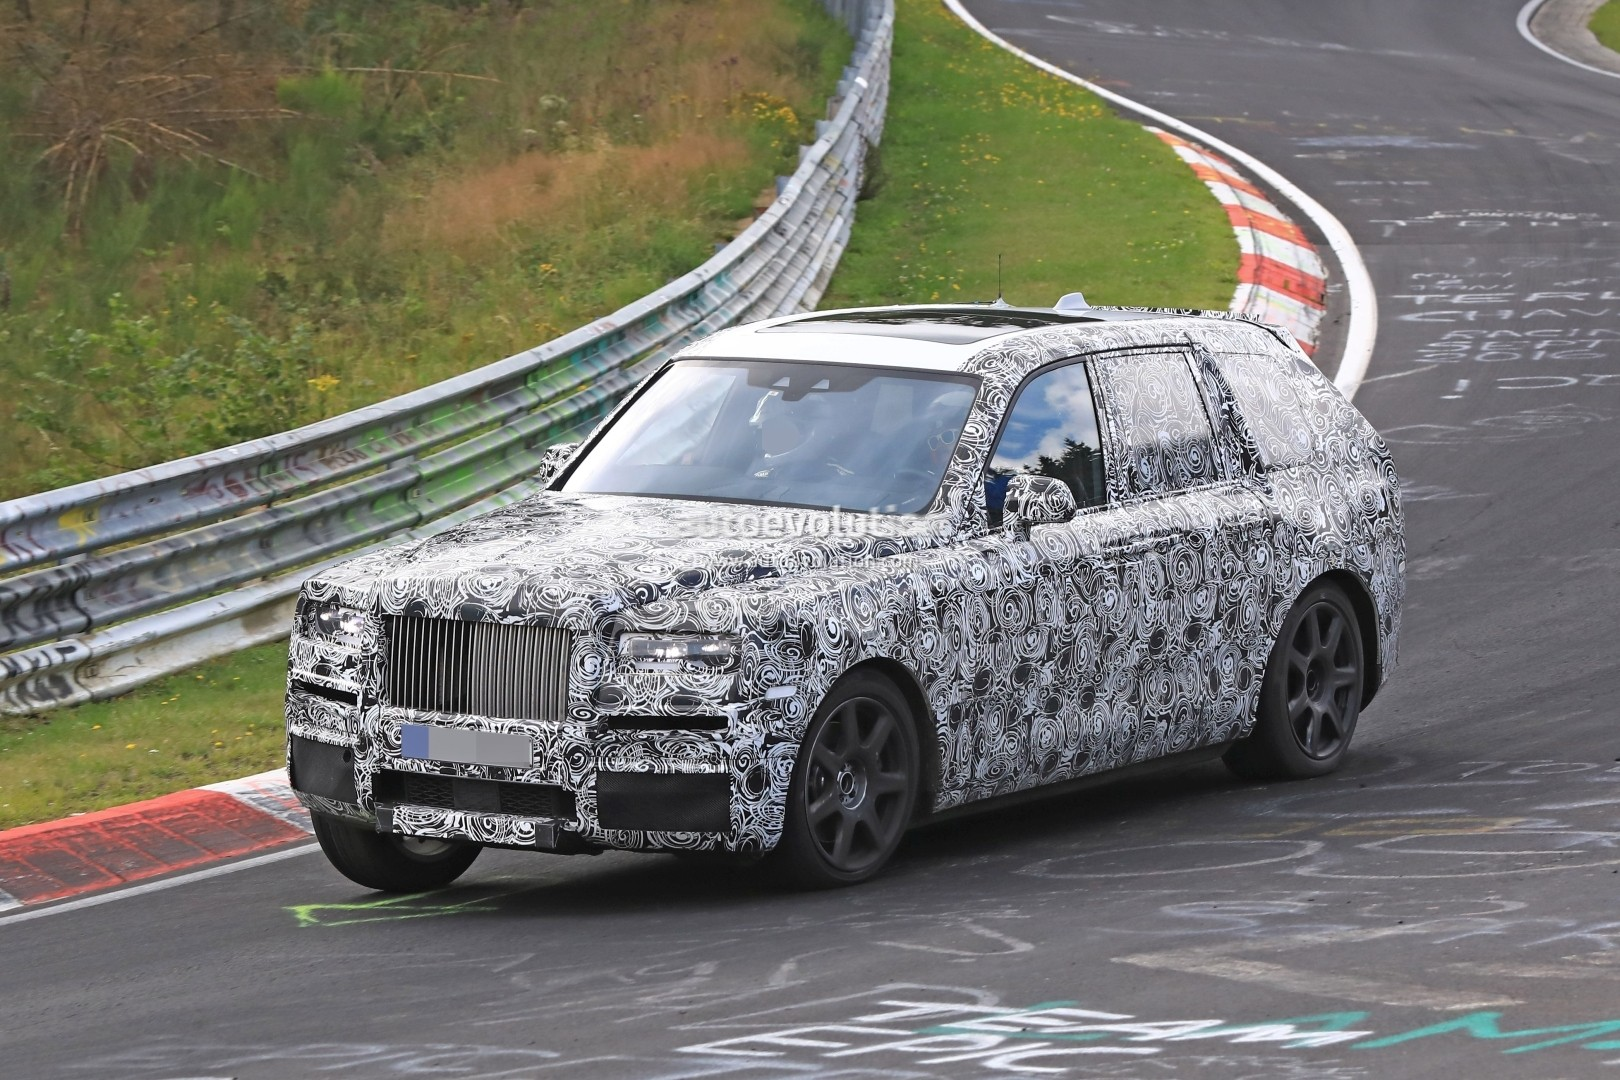 Rolls-Royce Says New Phantom Will Support Radical Customizations